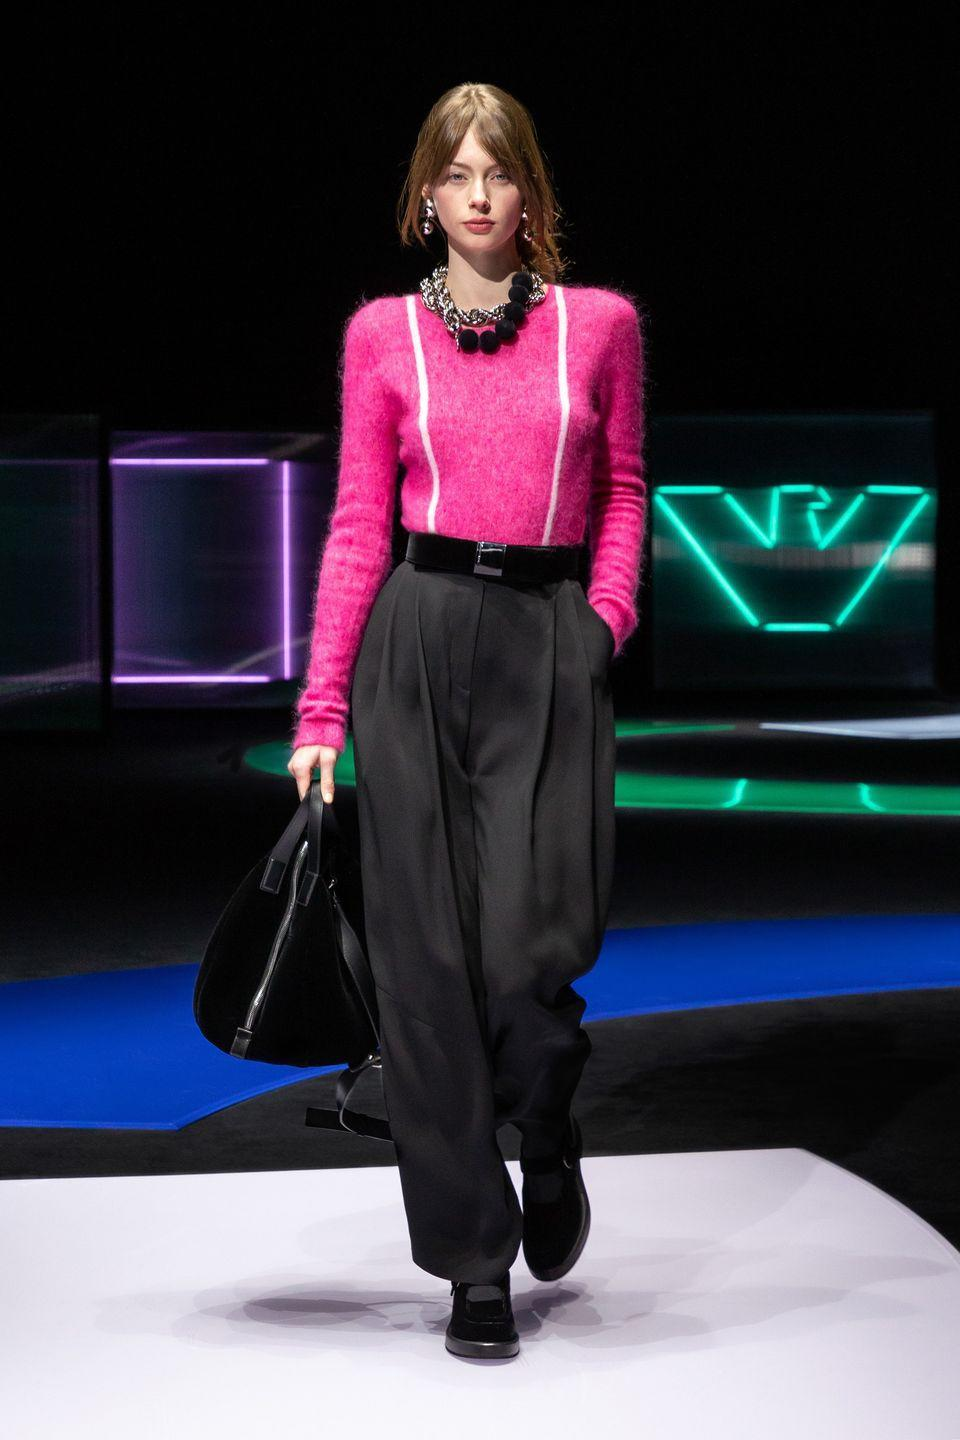 <p>Trends are cyclical, yes, yet some decades are less forgiving than others. The '80s can be the hardest for designers to make palatable what with all of that era's insistence on things that fall so far from classical aesthetic principles, yet Emporio Armani's reincarnation feels more than palatable. It's a softer version of some of the harsher shapes, with pleated-front trousers, skinny suspenders, and drop waist silhouettes included. The prints are bold and the velvet soft, yet neither read garish in a way vintage pieces might shriek. The '80s reliably make for fun costume parties but not always real-life fodder; it feels refreshing to see a take that's not just acceptable but actually exciting.<em>—Leah Melby Clinton</em></p>